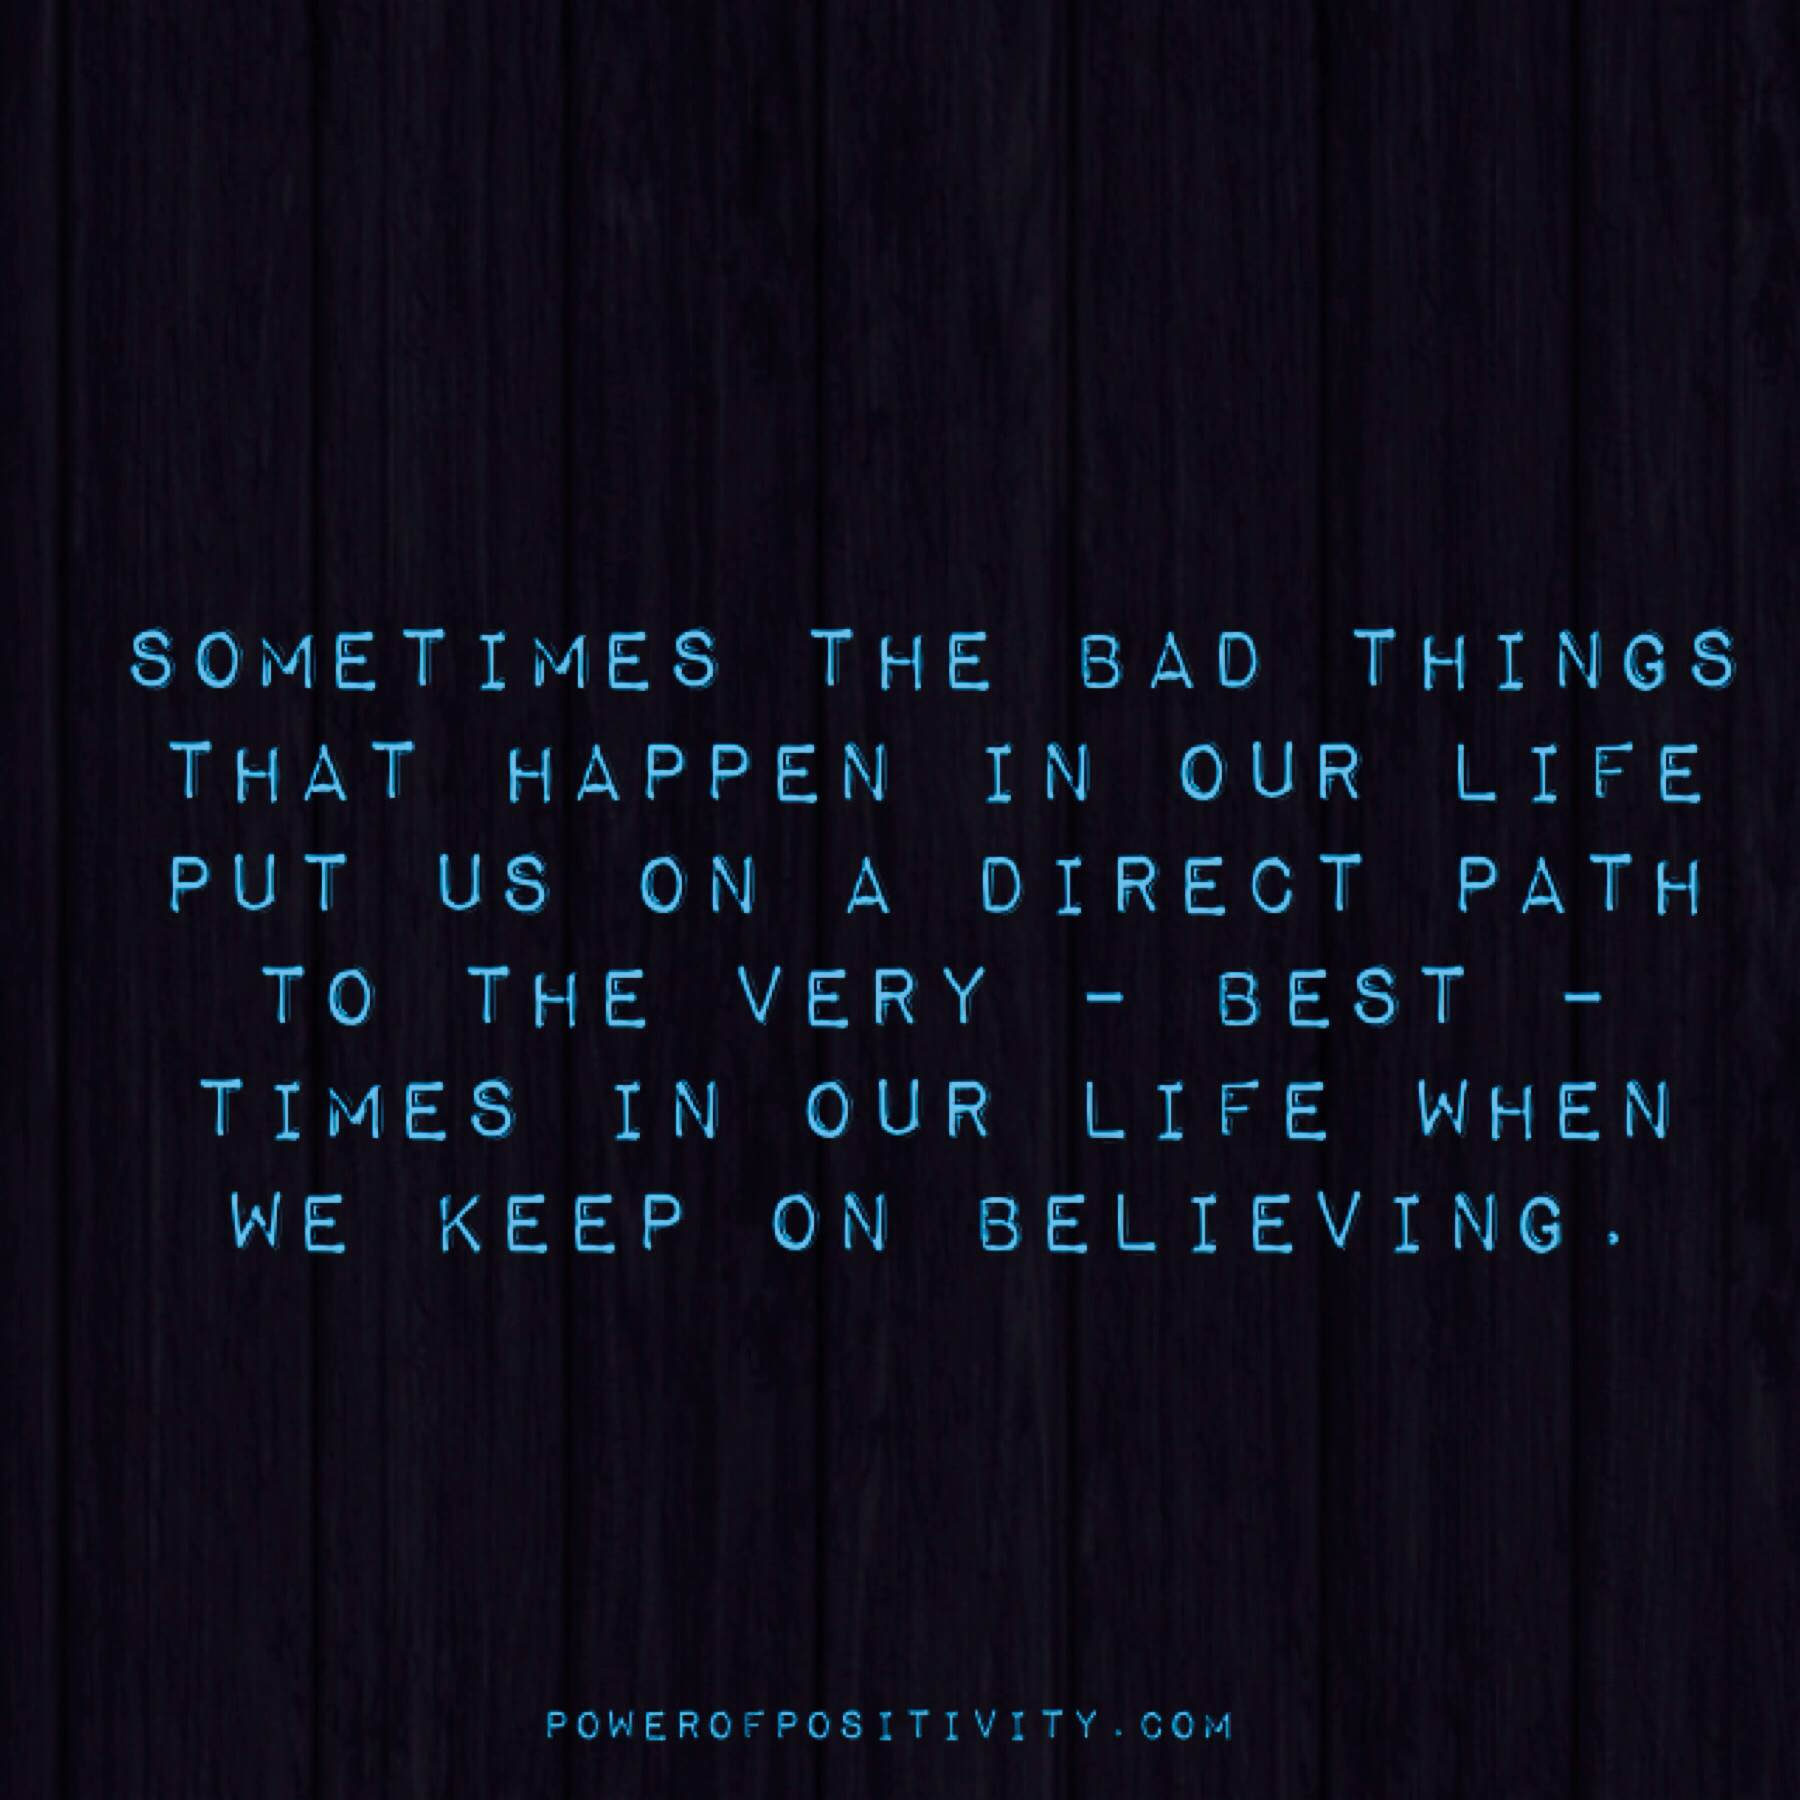 Quotes About Bad Things: Sometimes The Bad Things That Happen In Our Life